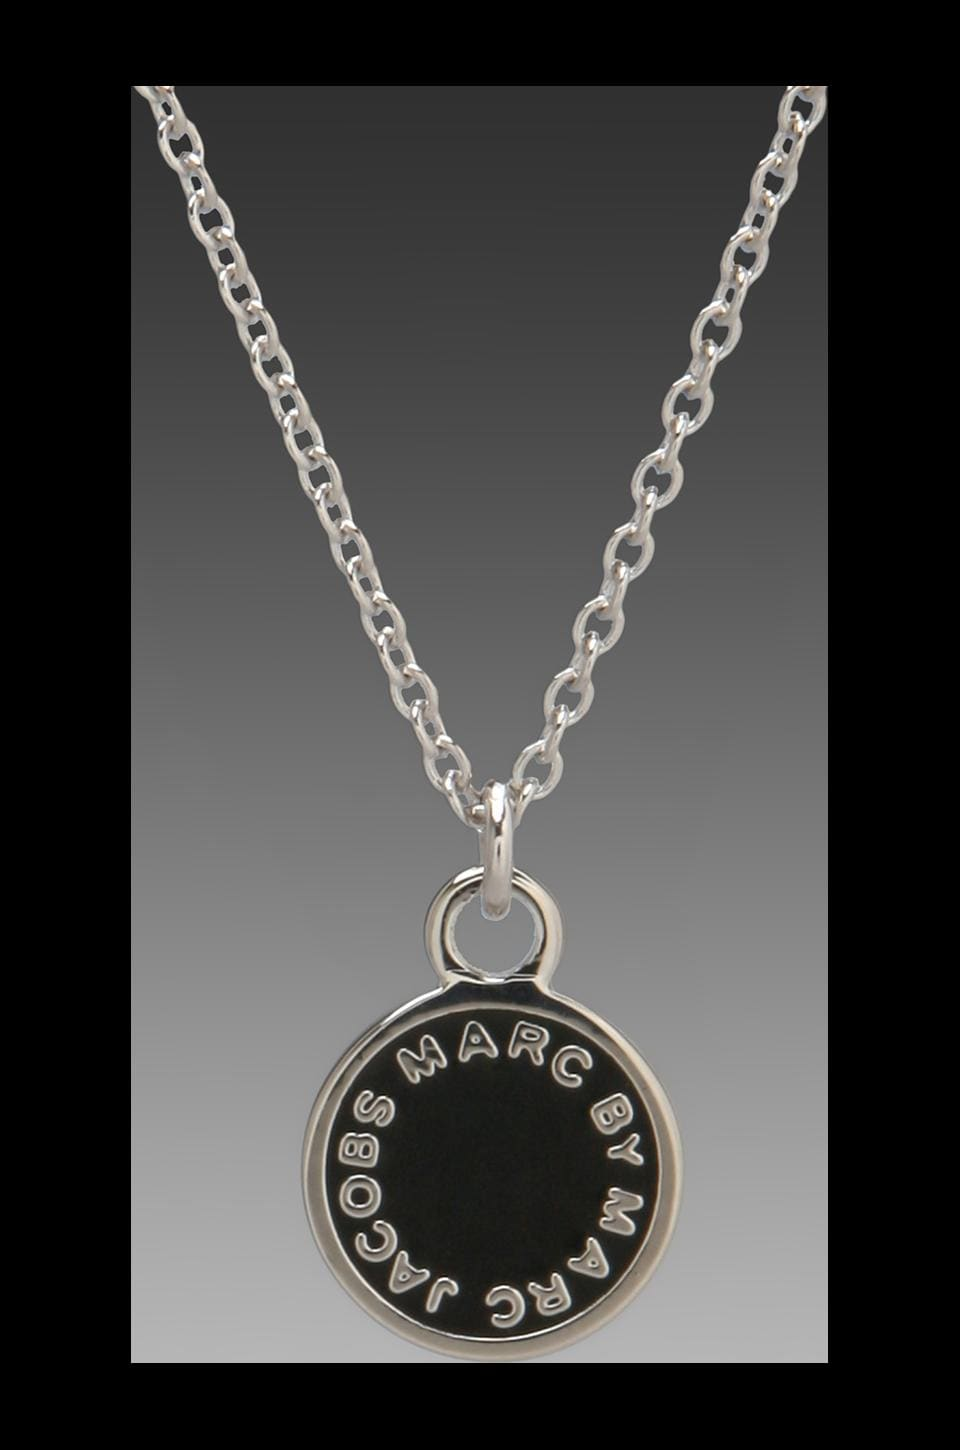 Marc by Marc Jacobs Enamel Disc Pendant in Black/Argento